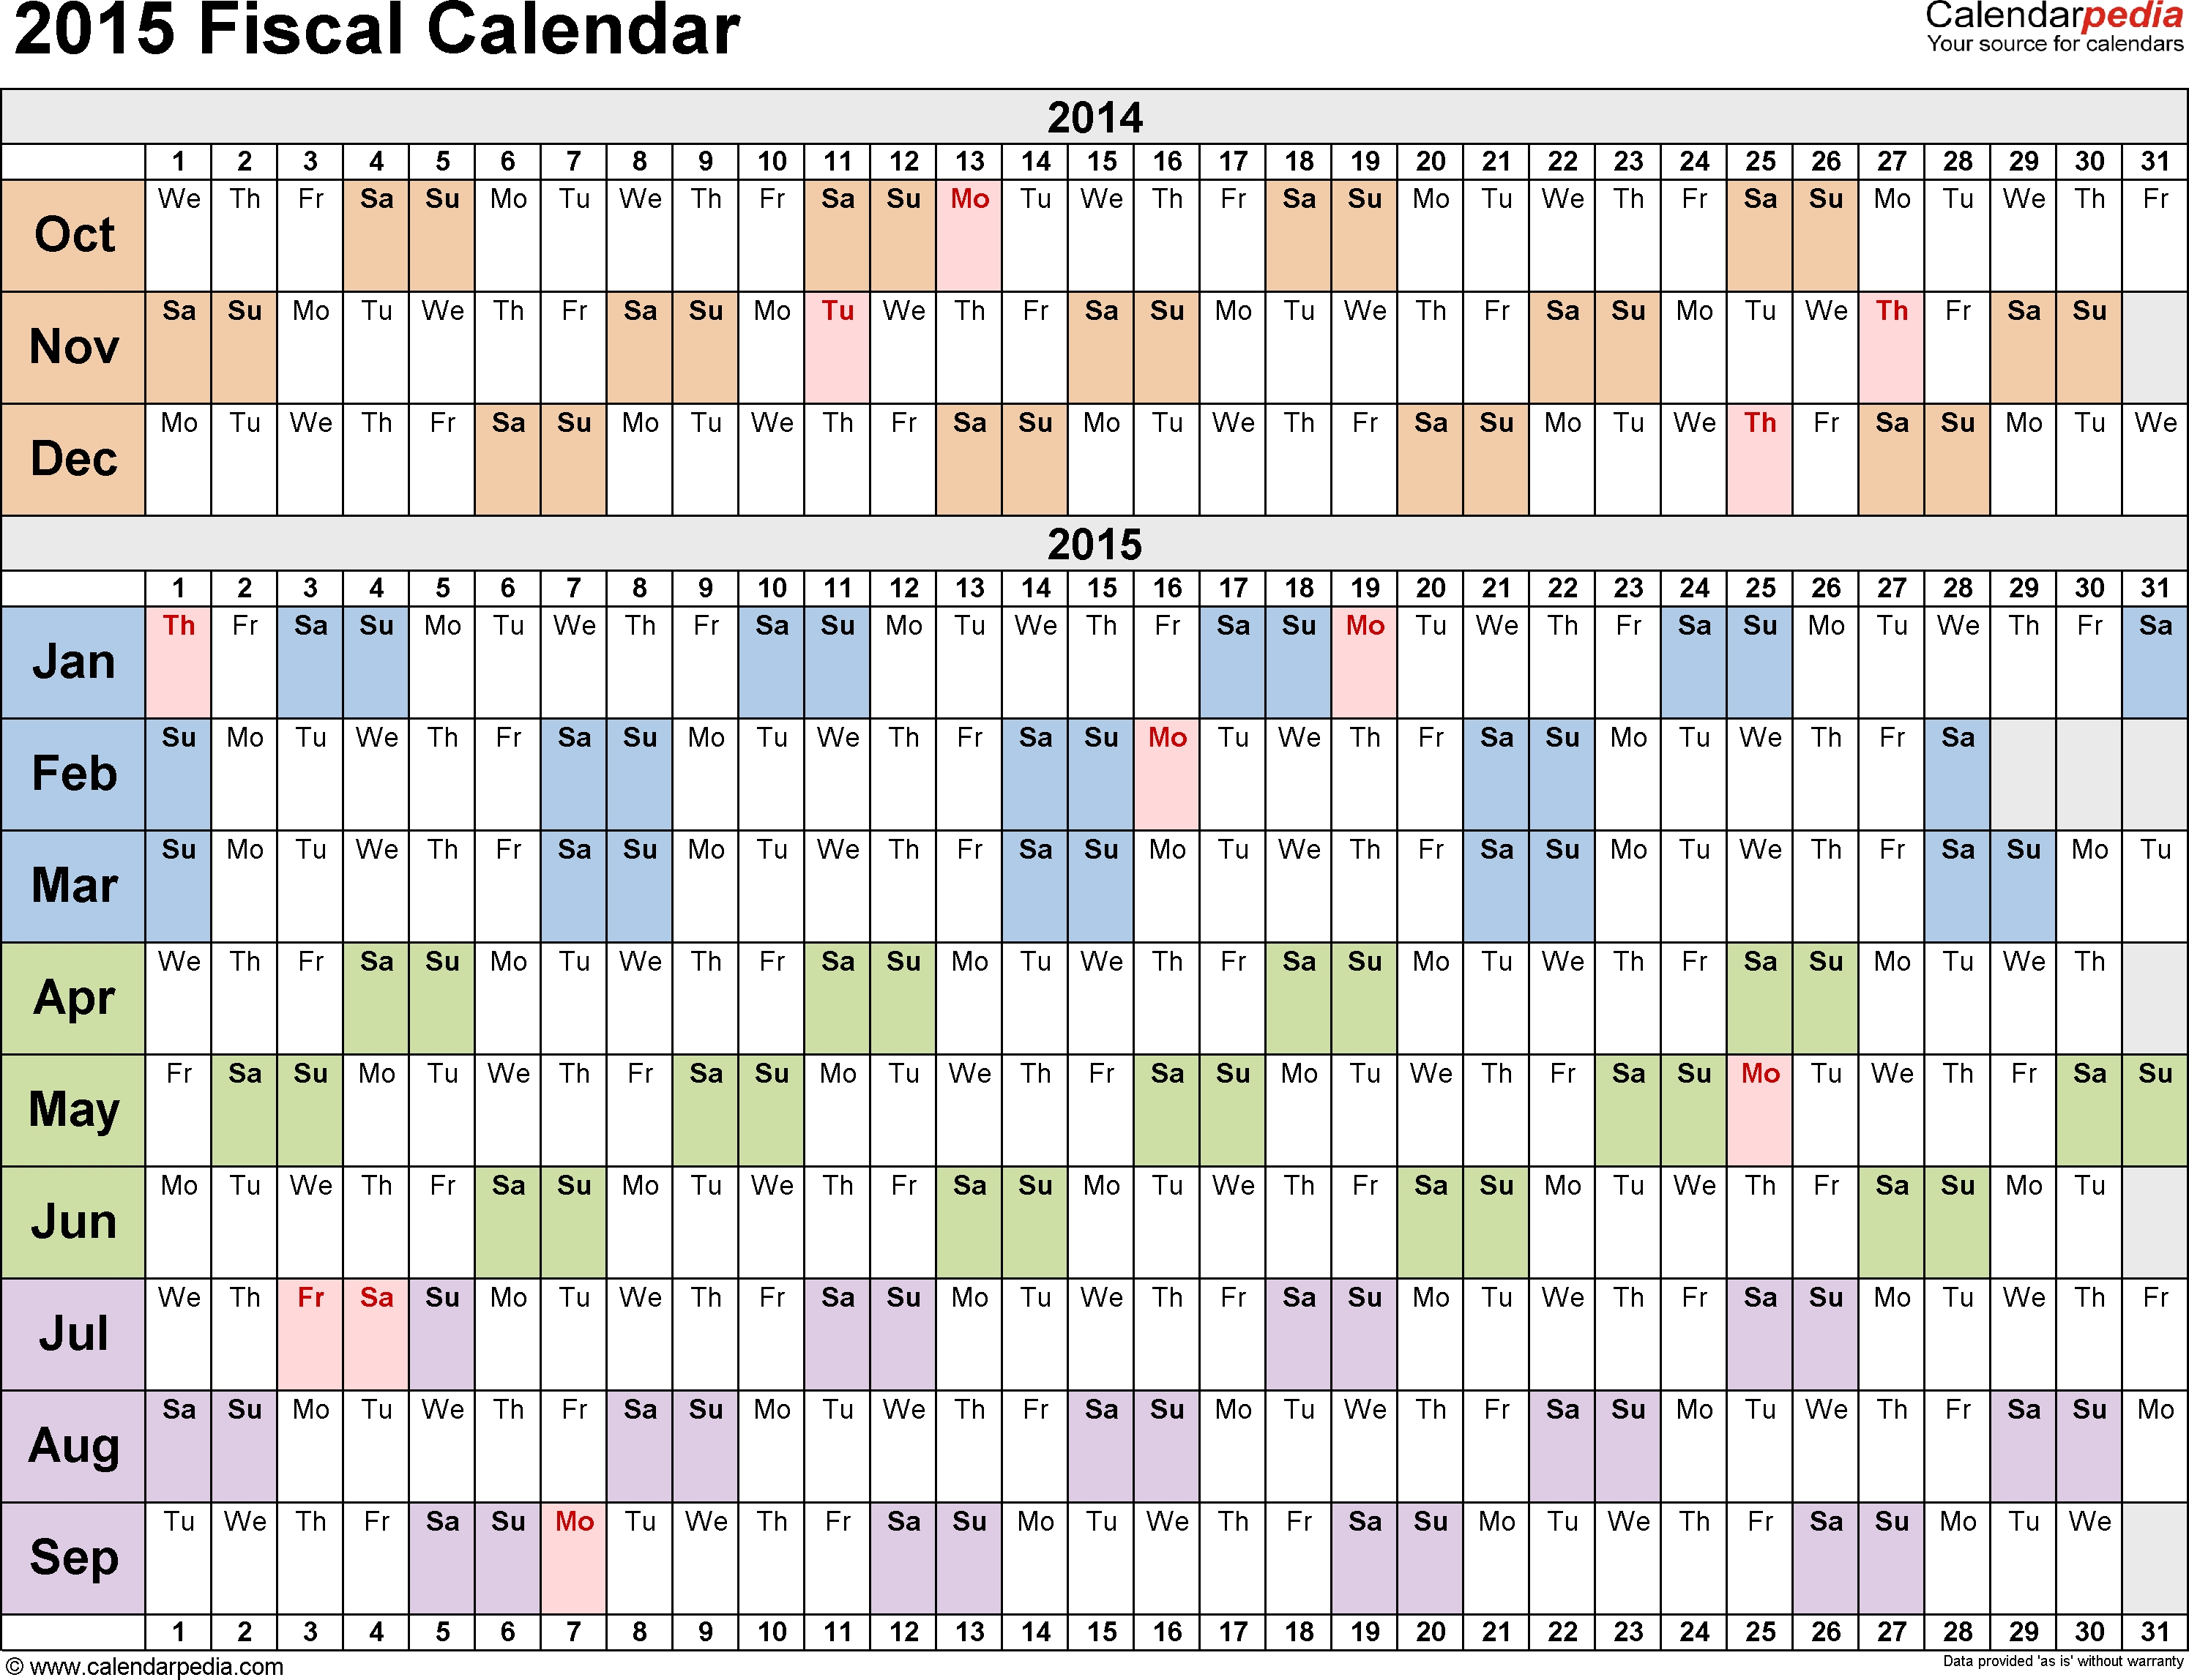 Fiscal Calendars 2015 As Free Printable #145921 - Png Images